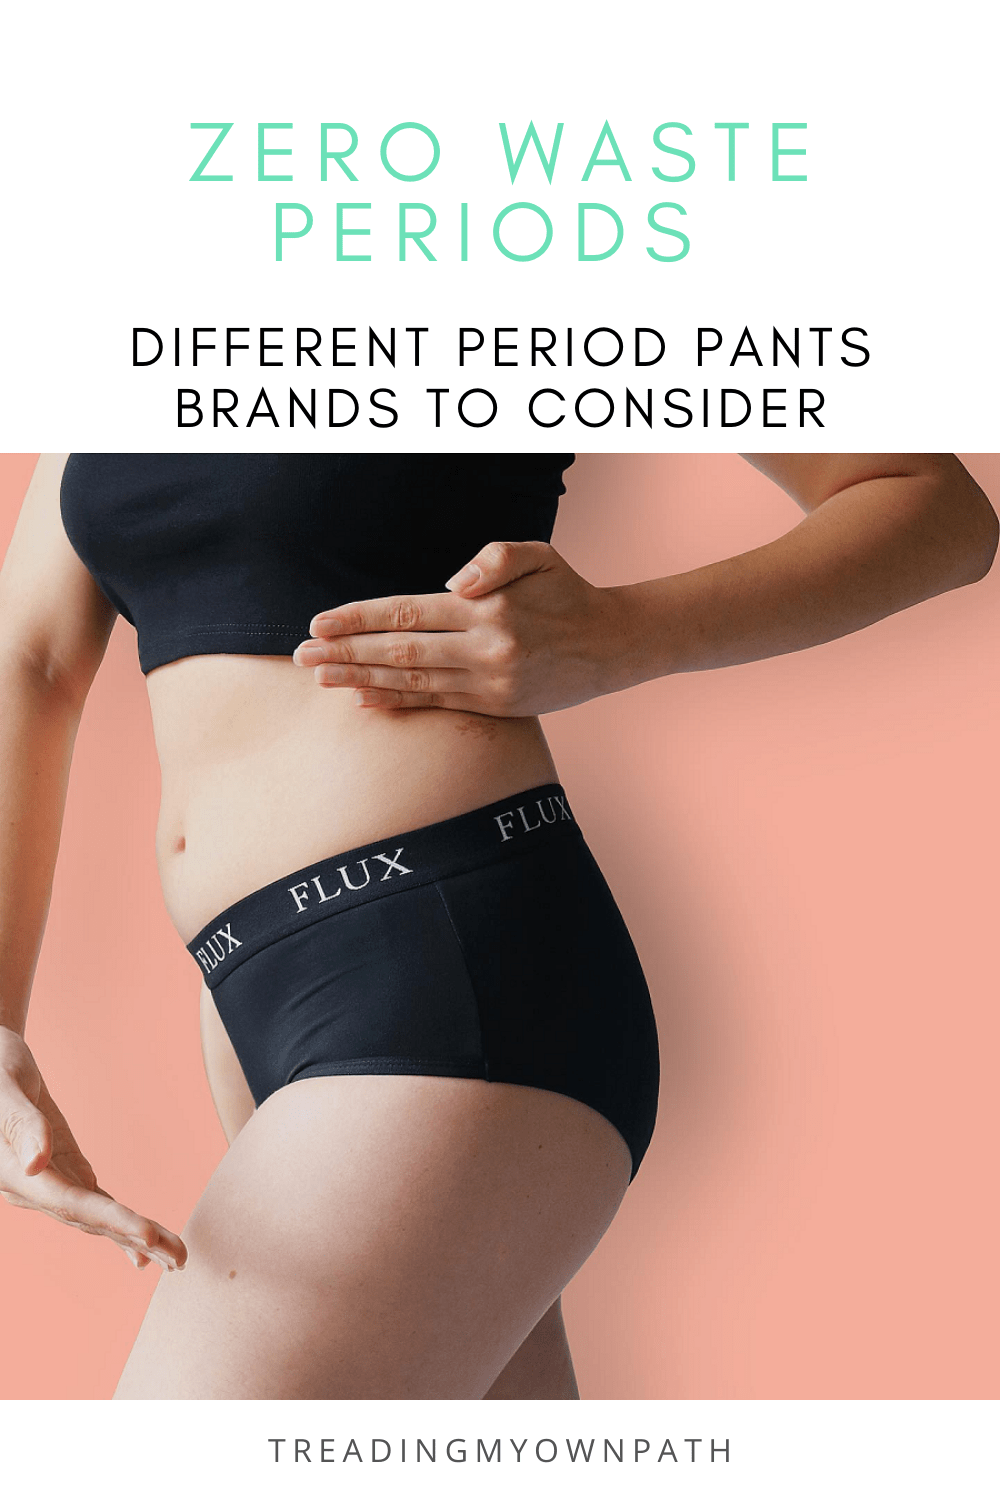 Zero waste periods: the pros and cons of menstrual underwear (+ 6 brands to consider)